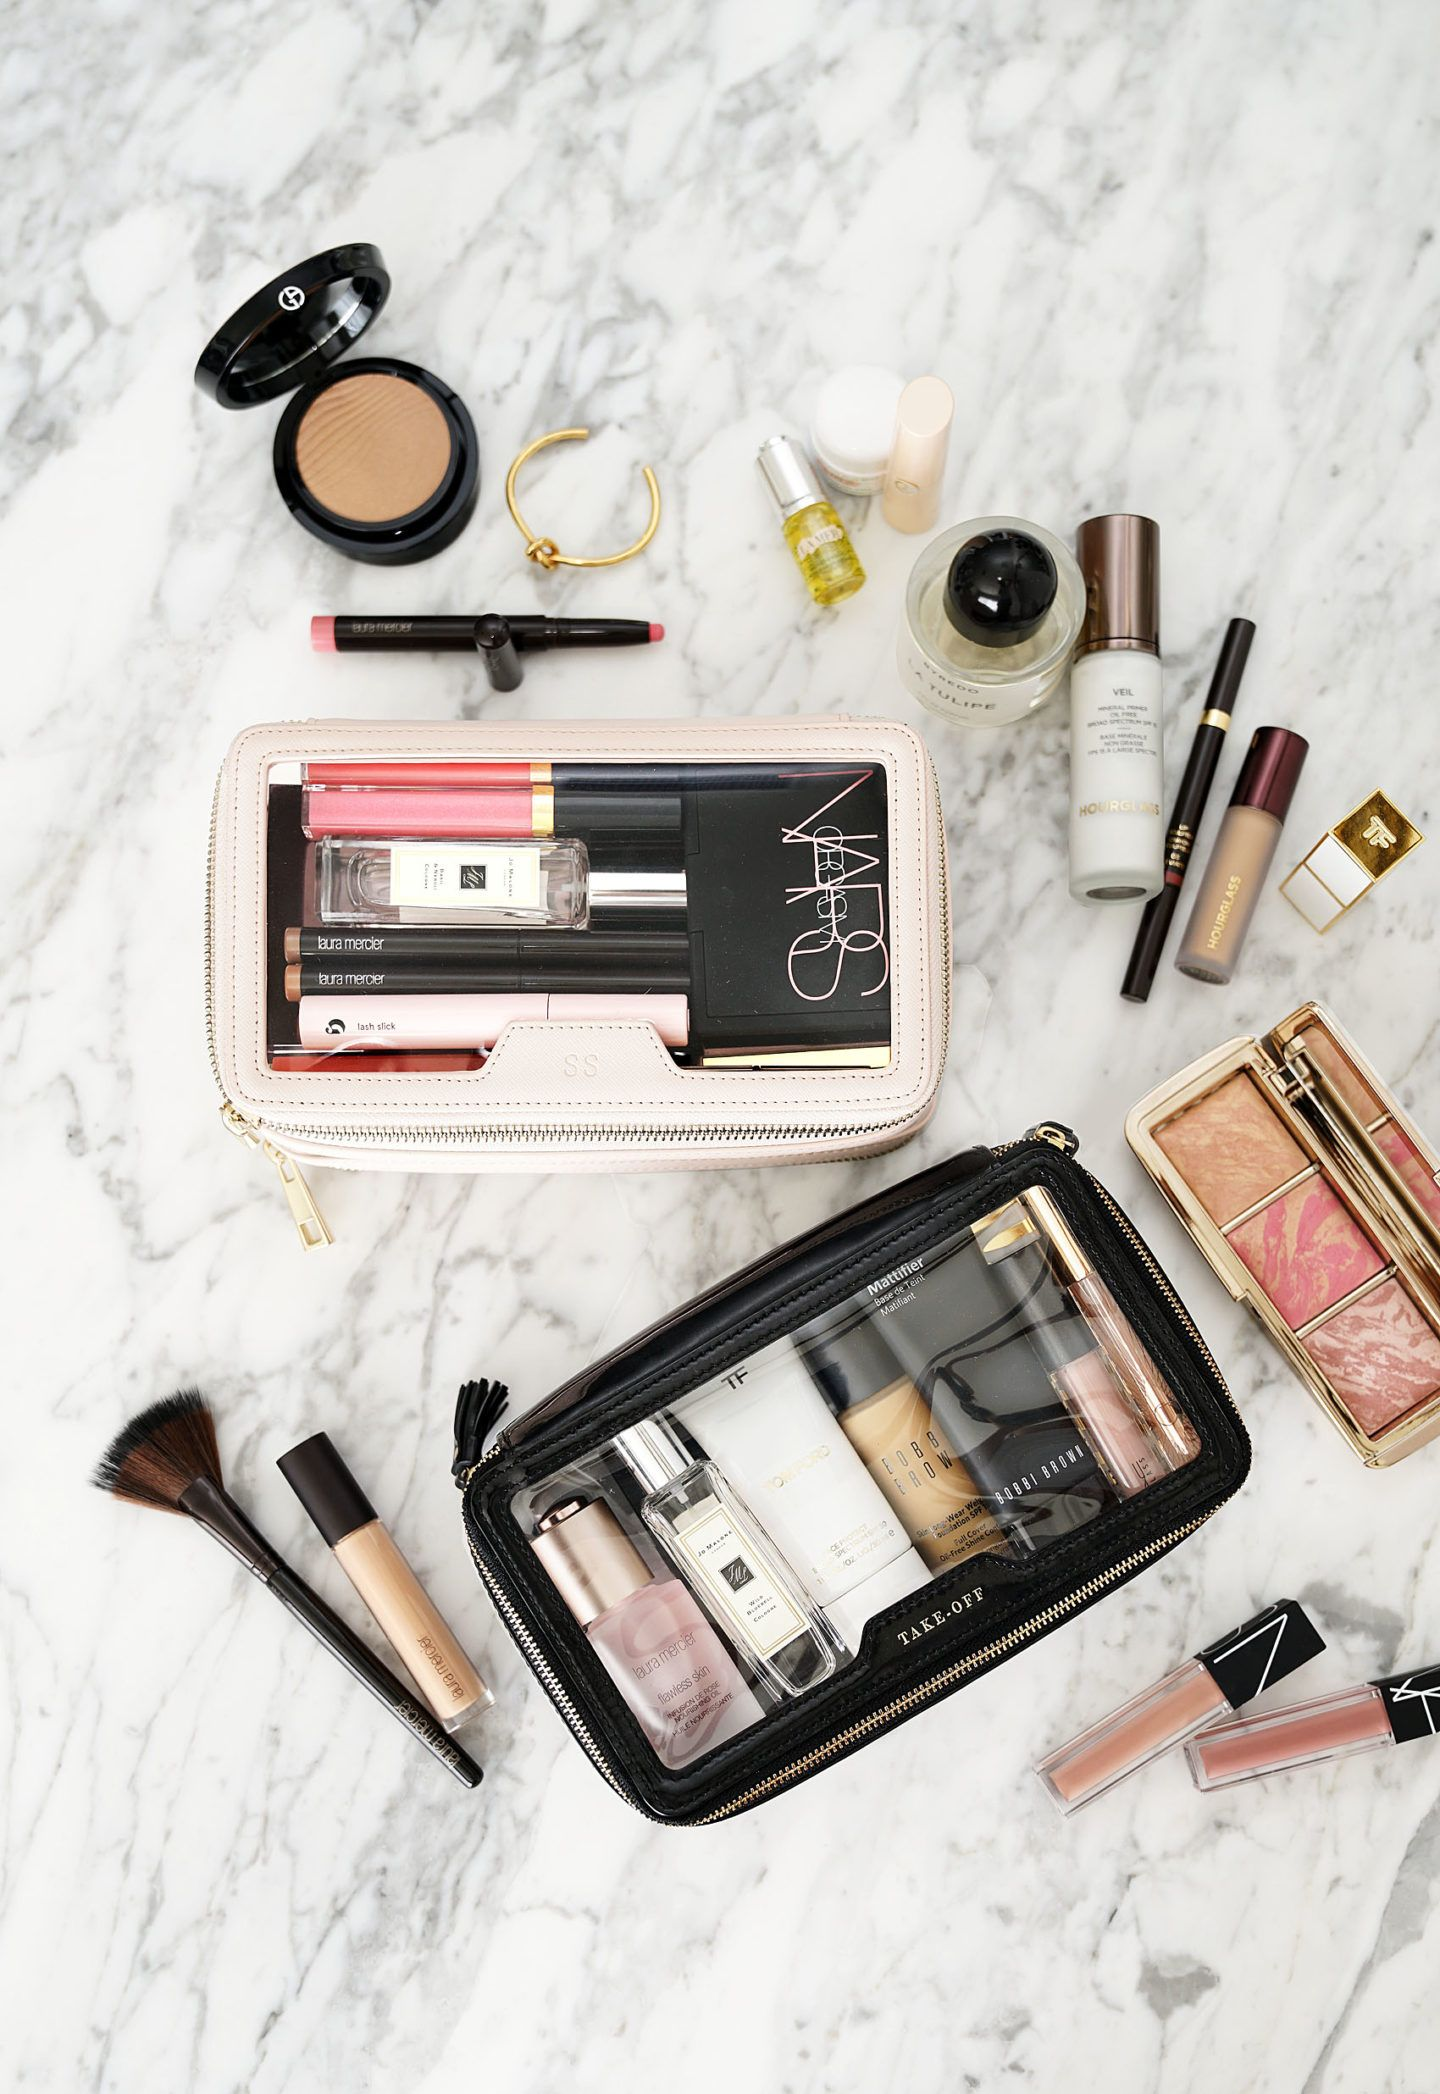 19435182e6 The Daily Edited Transparent Cosmetic Case vs Anya Hindmarch Inflight  Travel Case | The Beauty Look Book